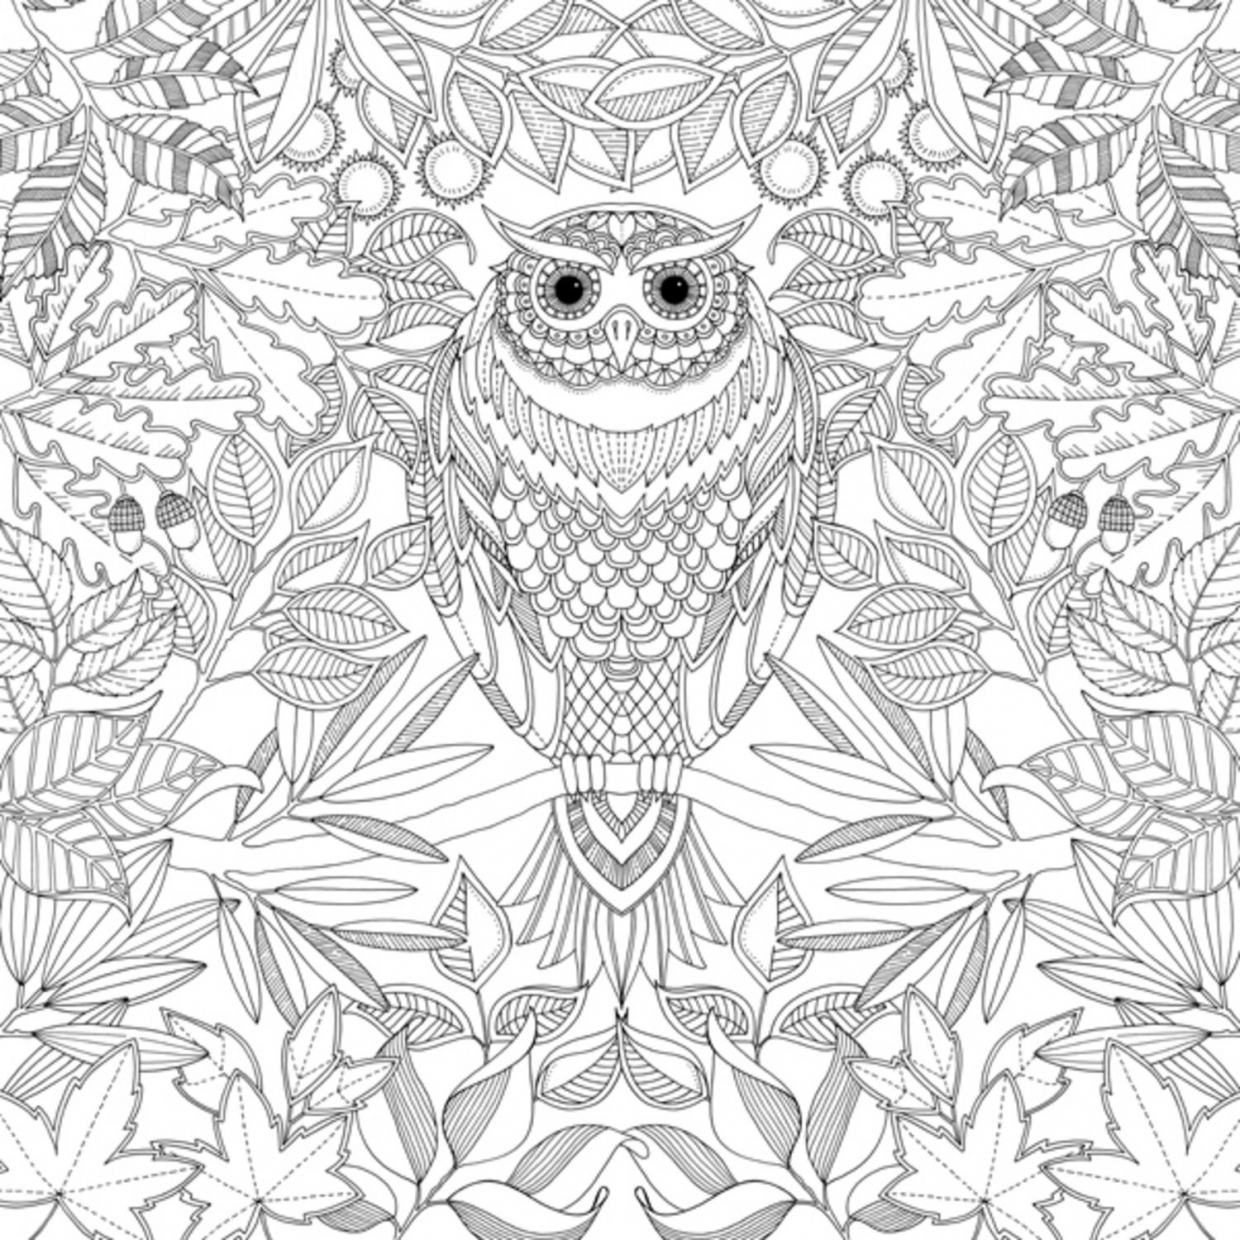 Printable Complex Coloring Pages New Get This Free Complex Coloring Pages Printable Abxu2 Design Decoration